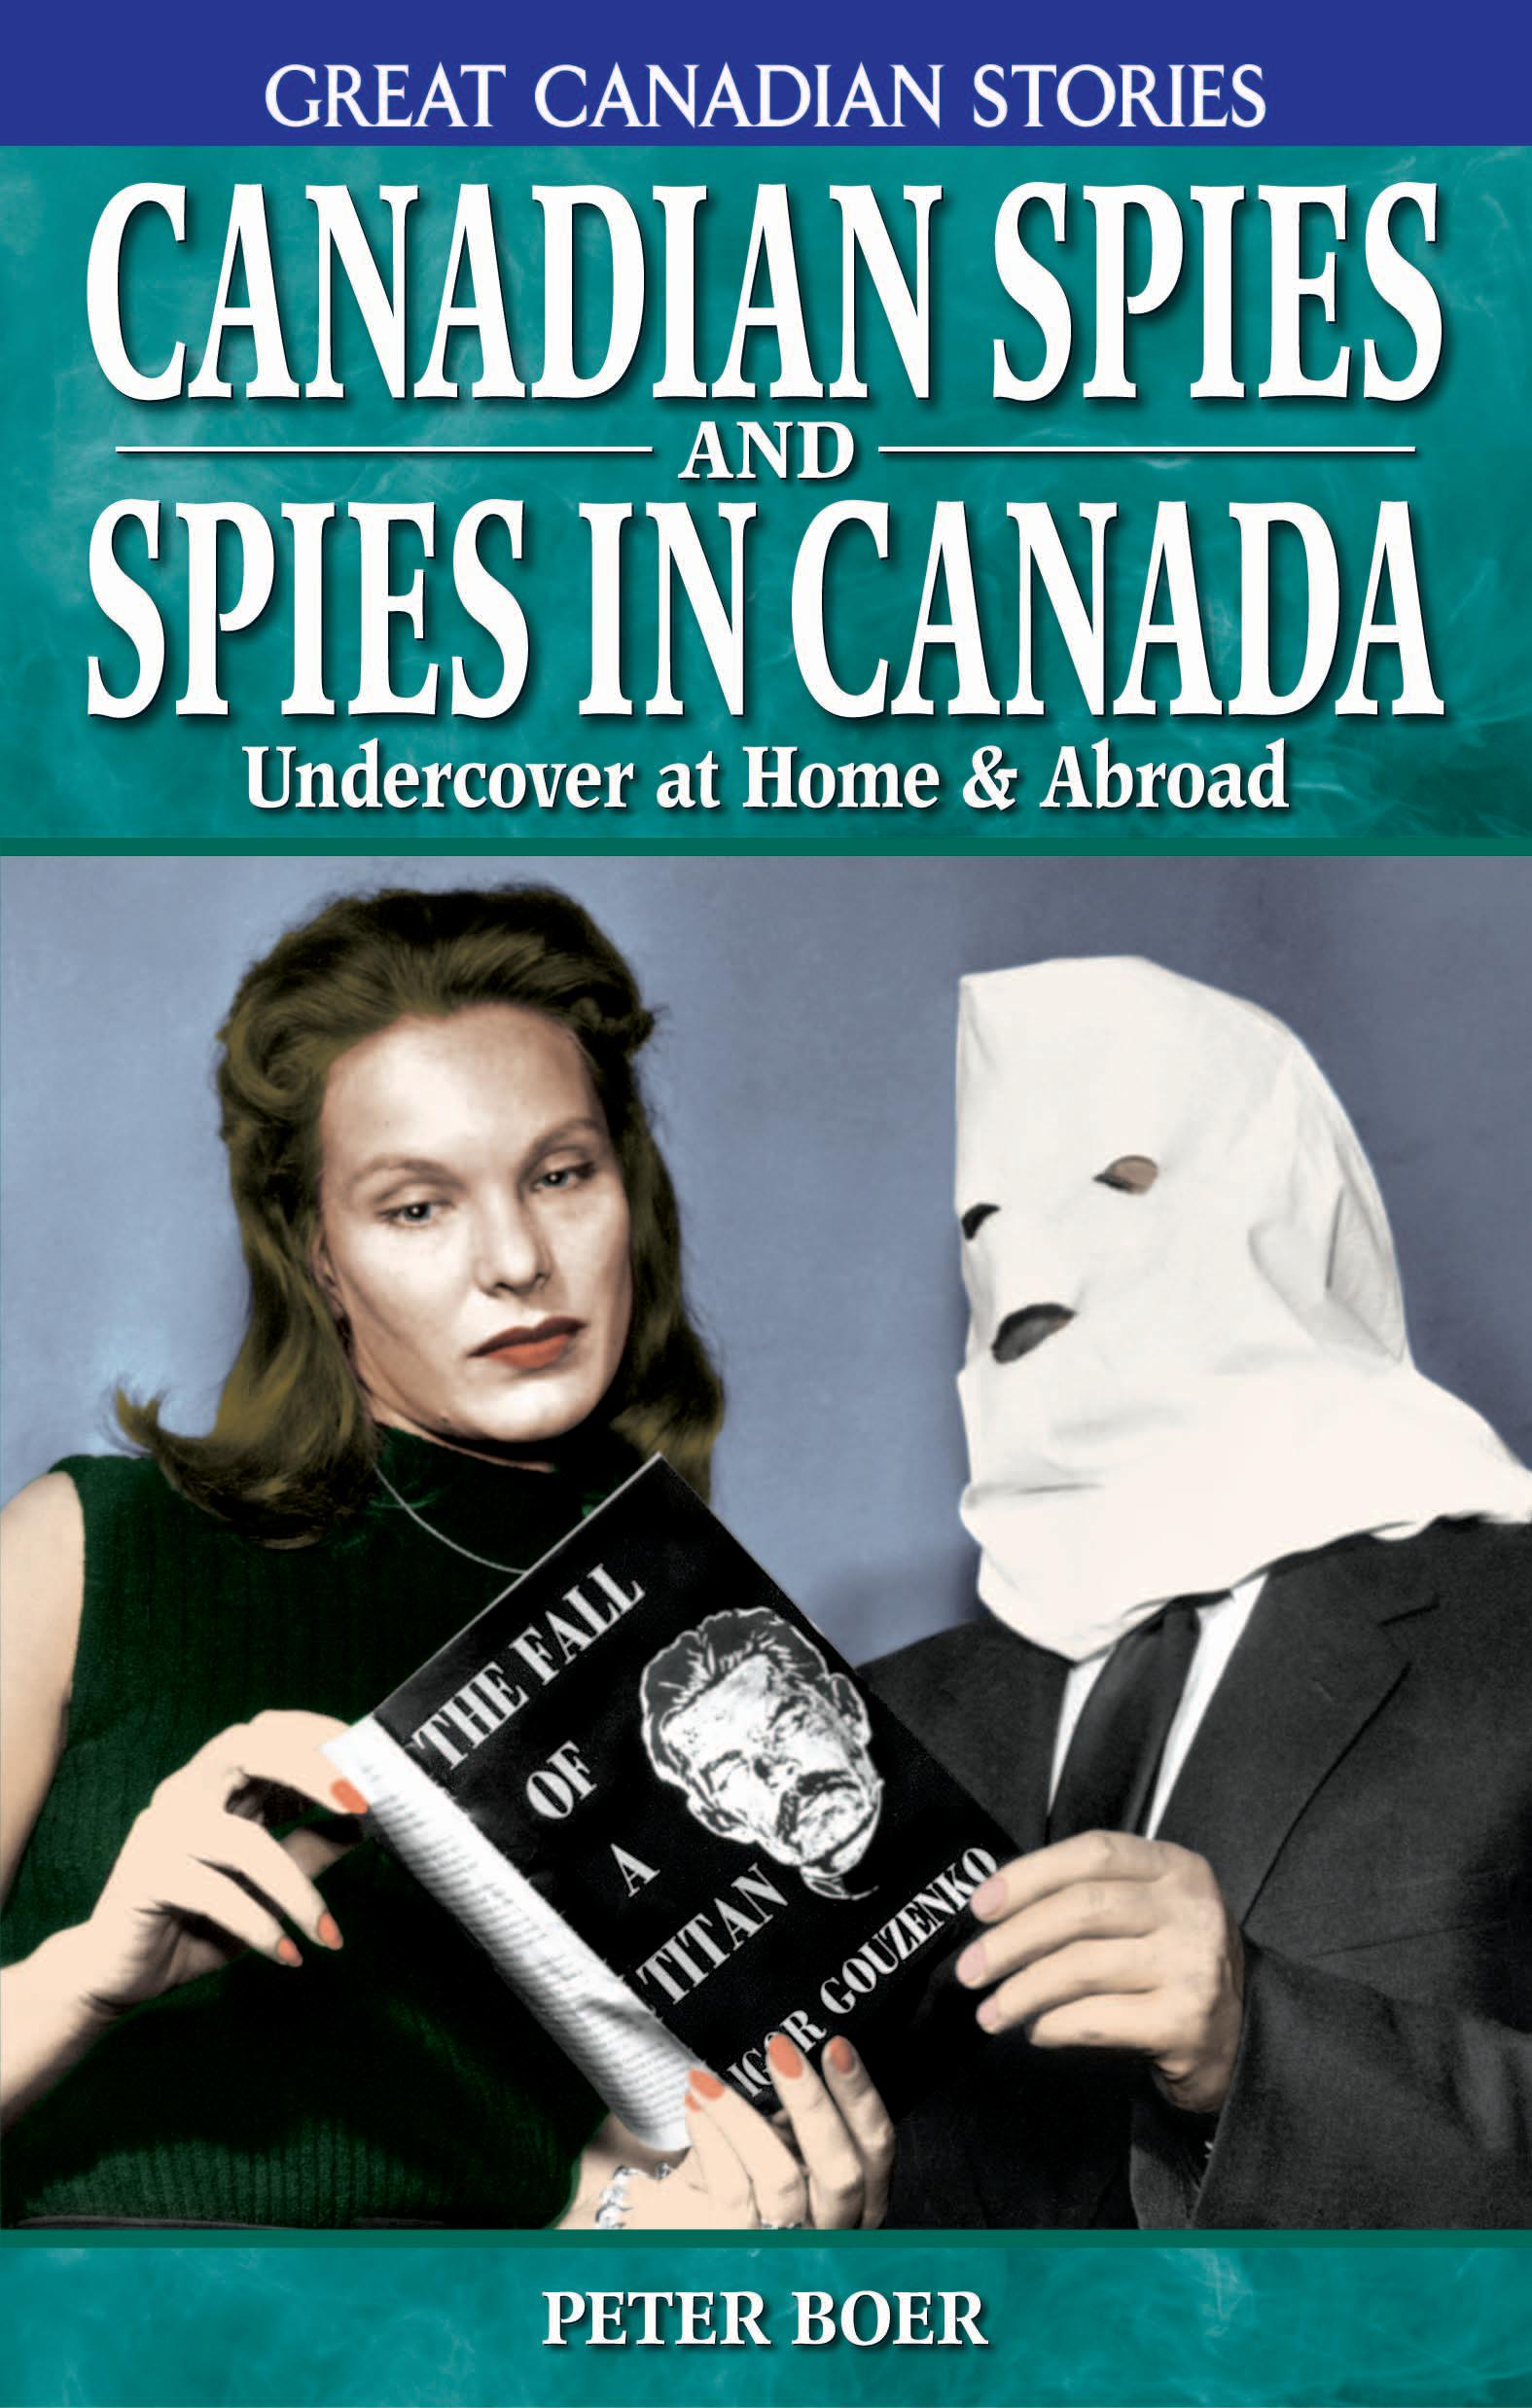 Canadian Spies & Spies in Canada